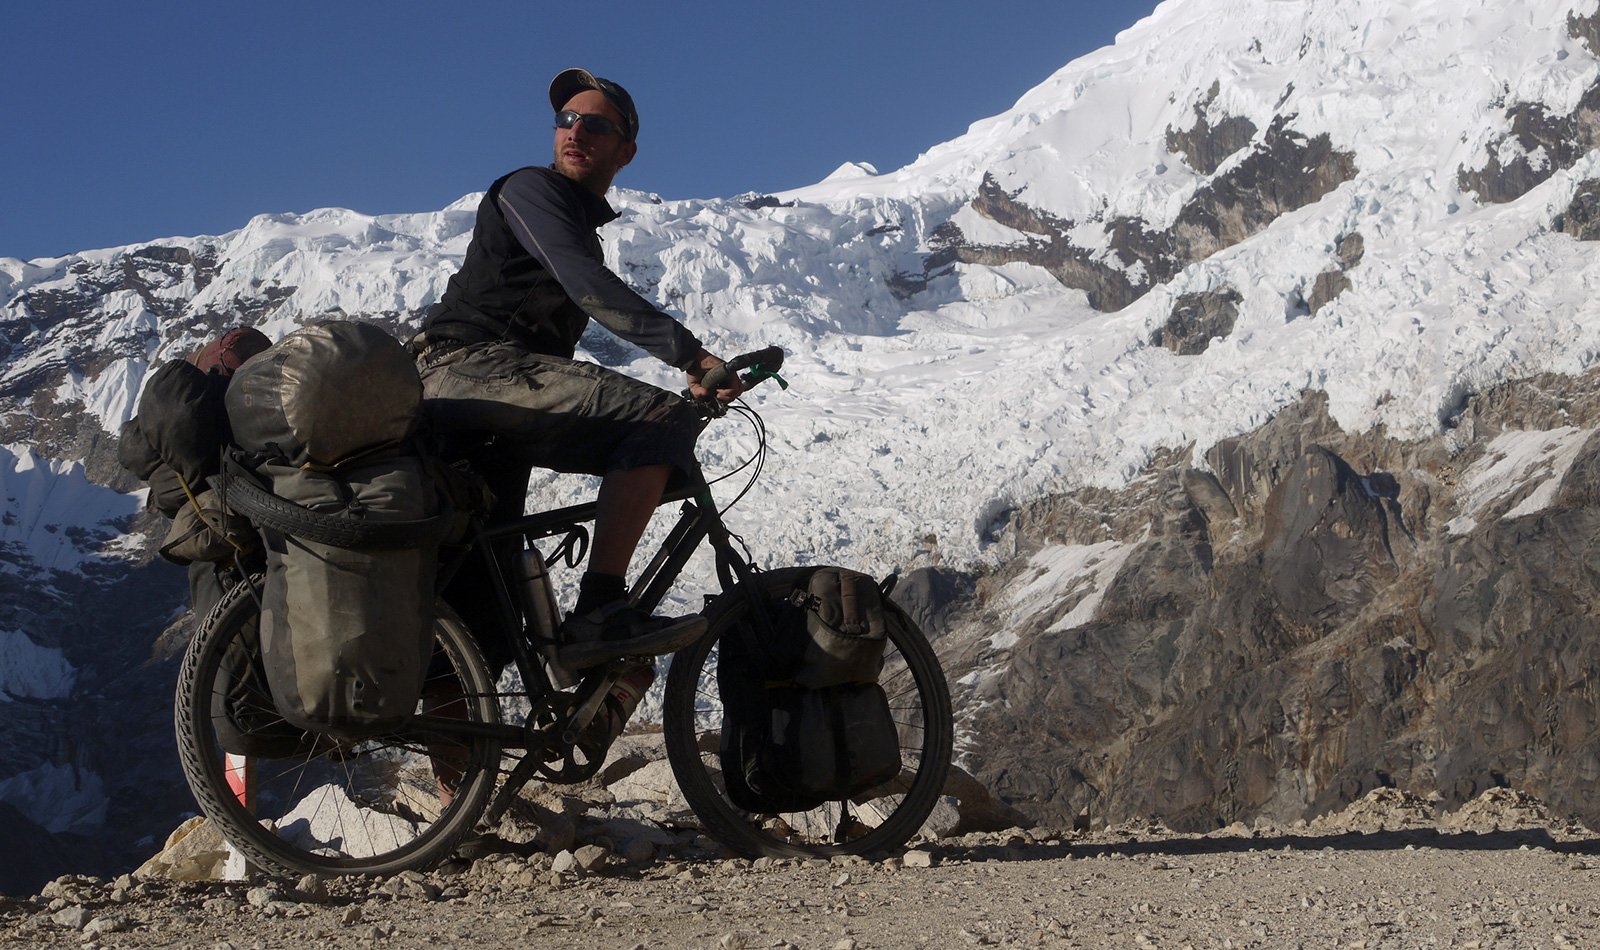 Snail's Pass - Across the Andes by Bike